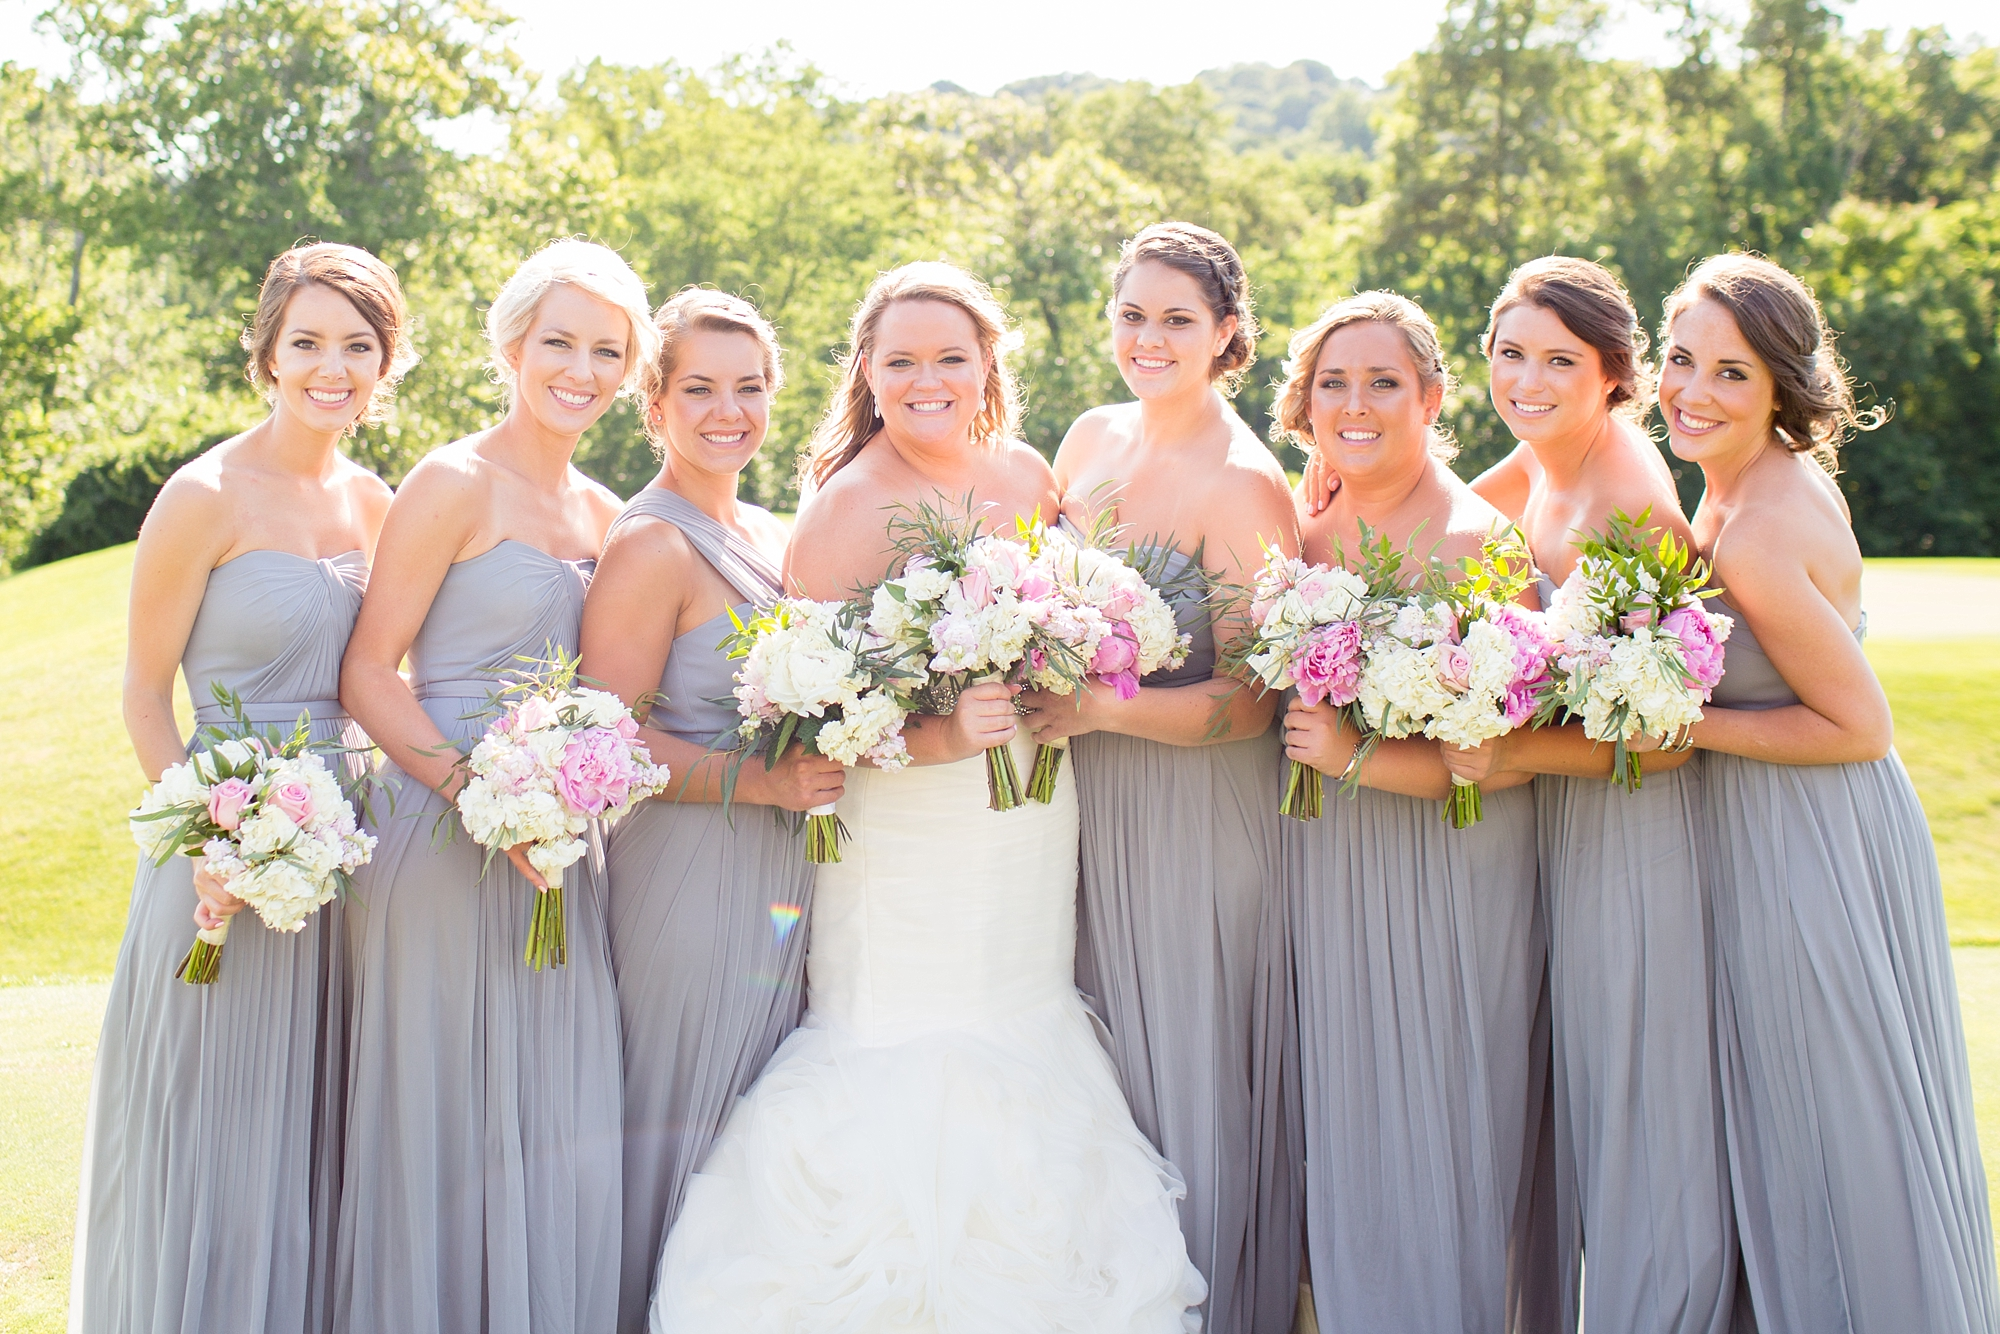 Peterson 4-Bridal Party-631_anna grace photography milford connecticut destination wedding photographer Great River Country Club photo.jpg